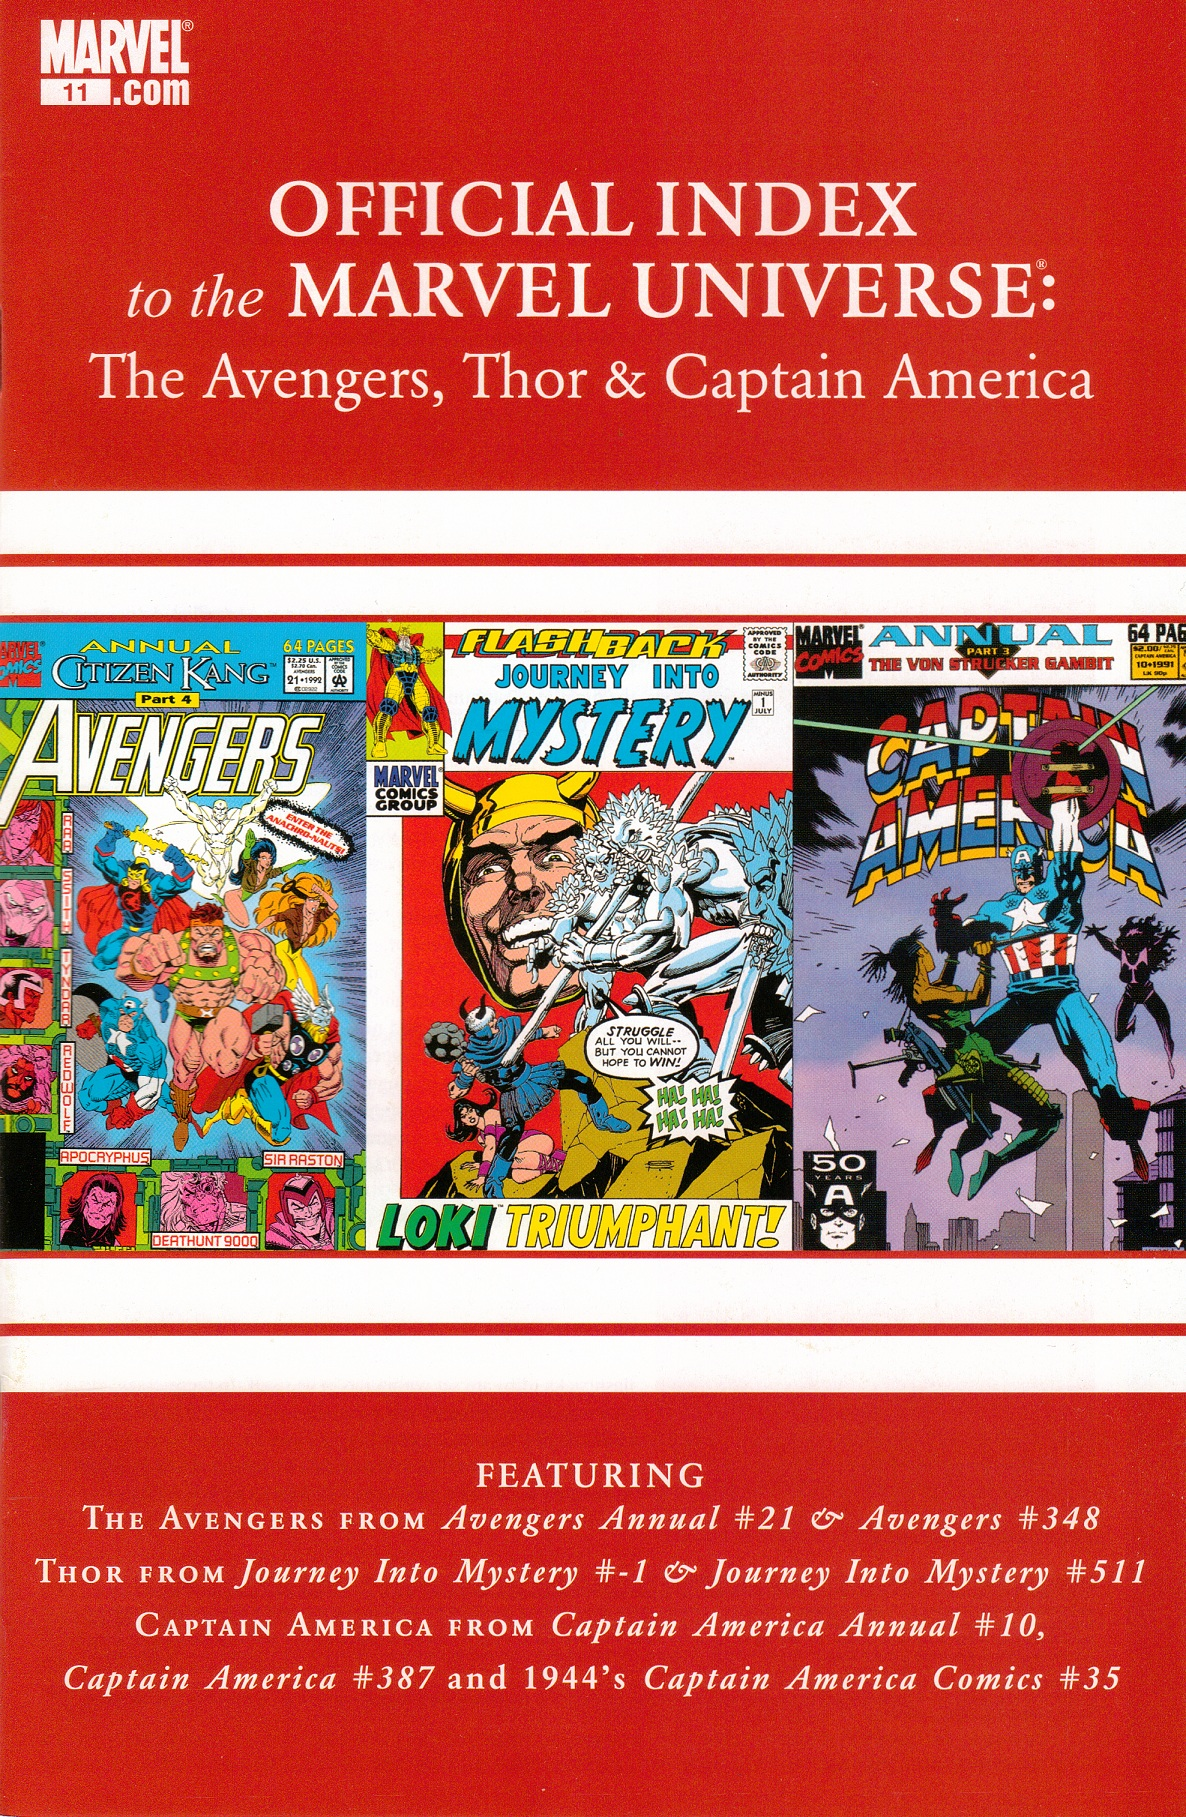 Avengers, Thor & Captain America: Official Index to the Marvel Universe Vol 1 11